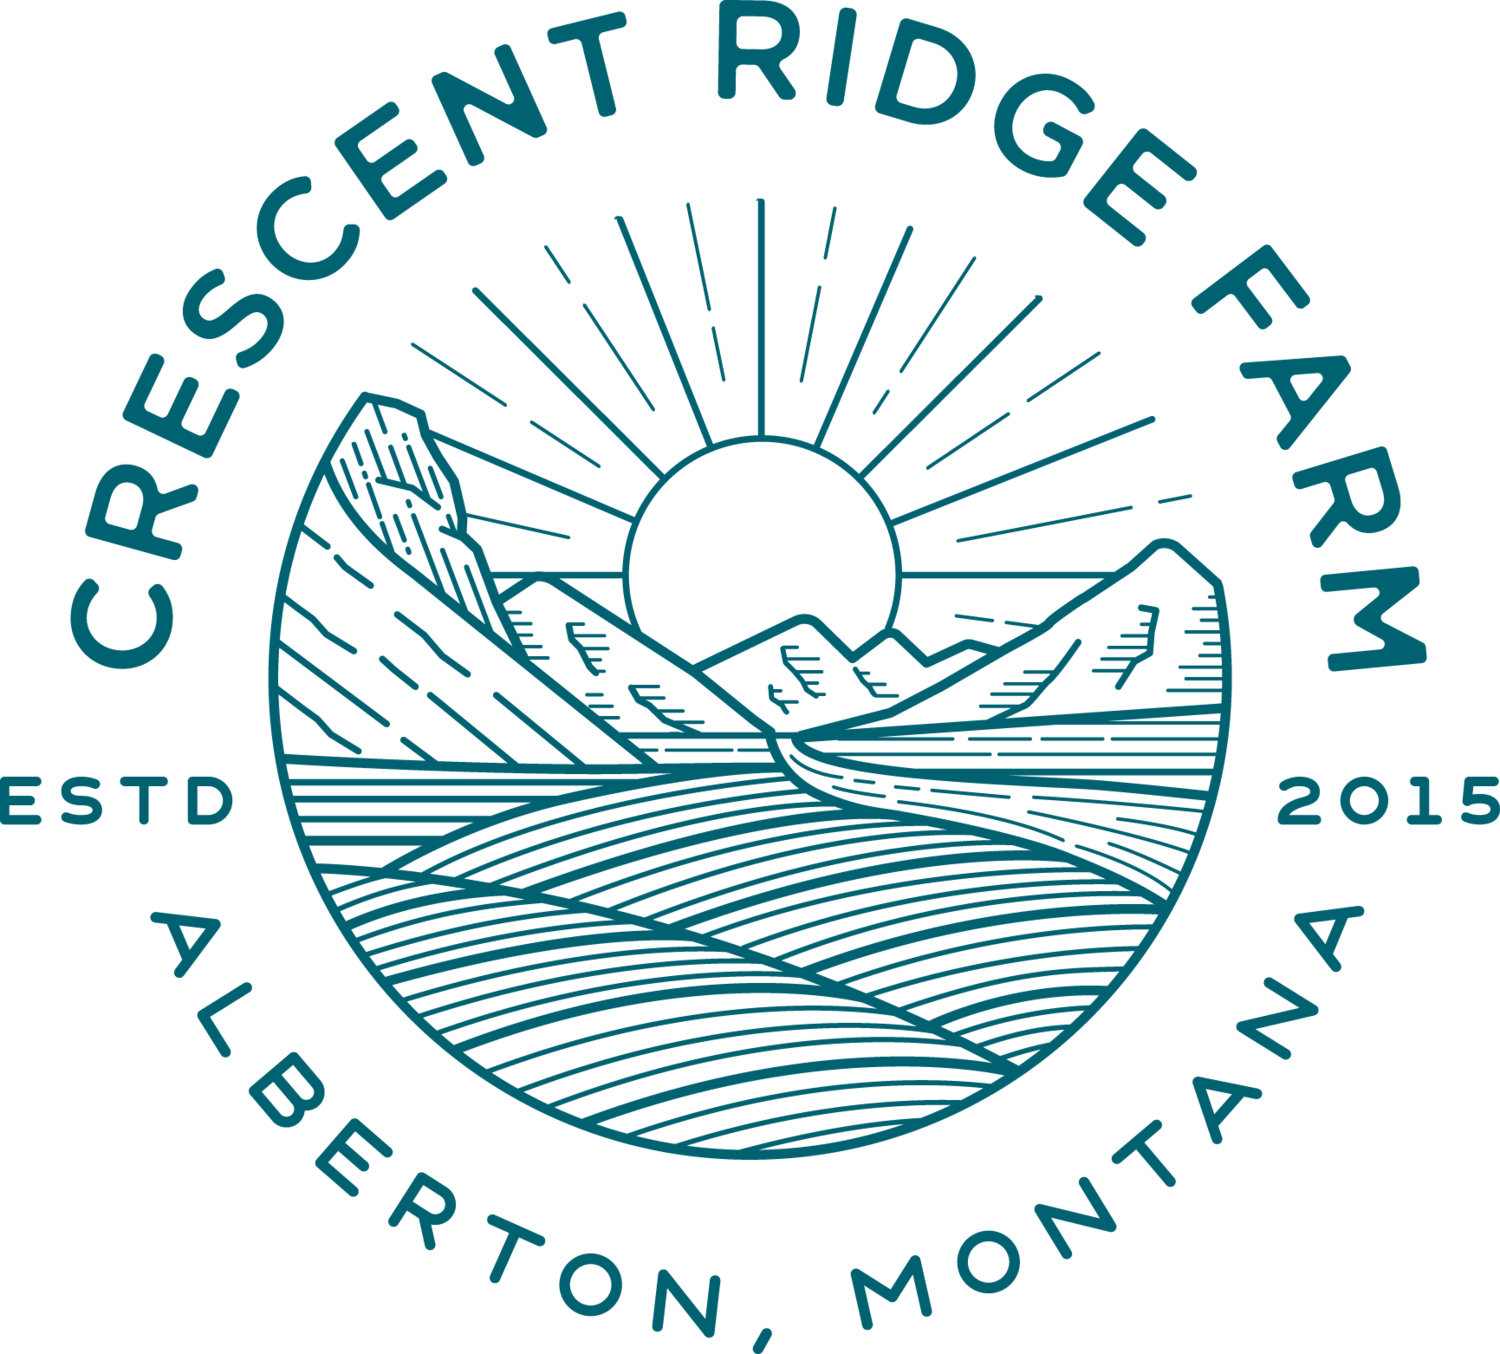 Crescent Ridge Farm